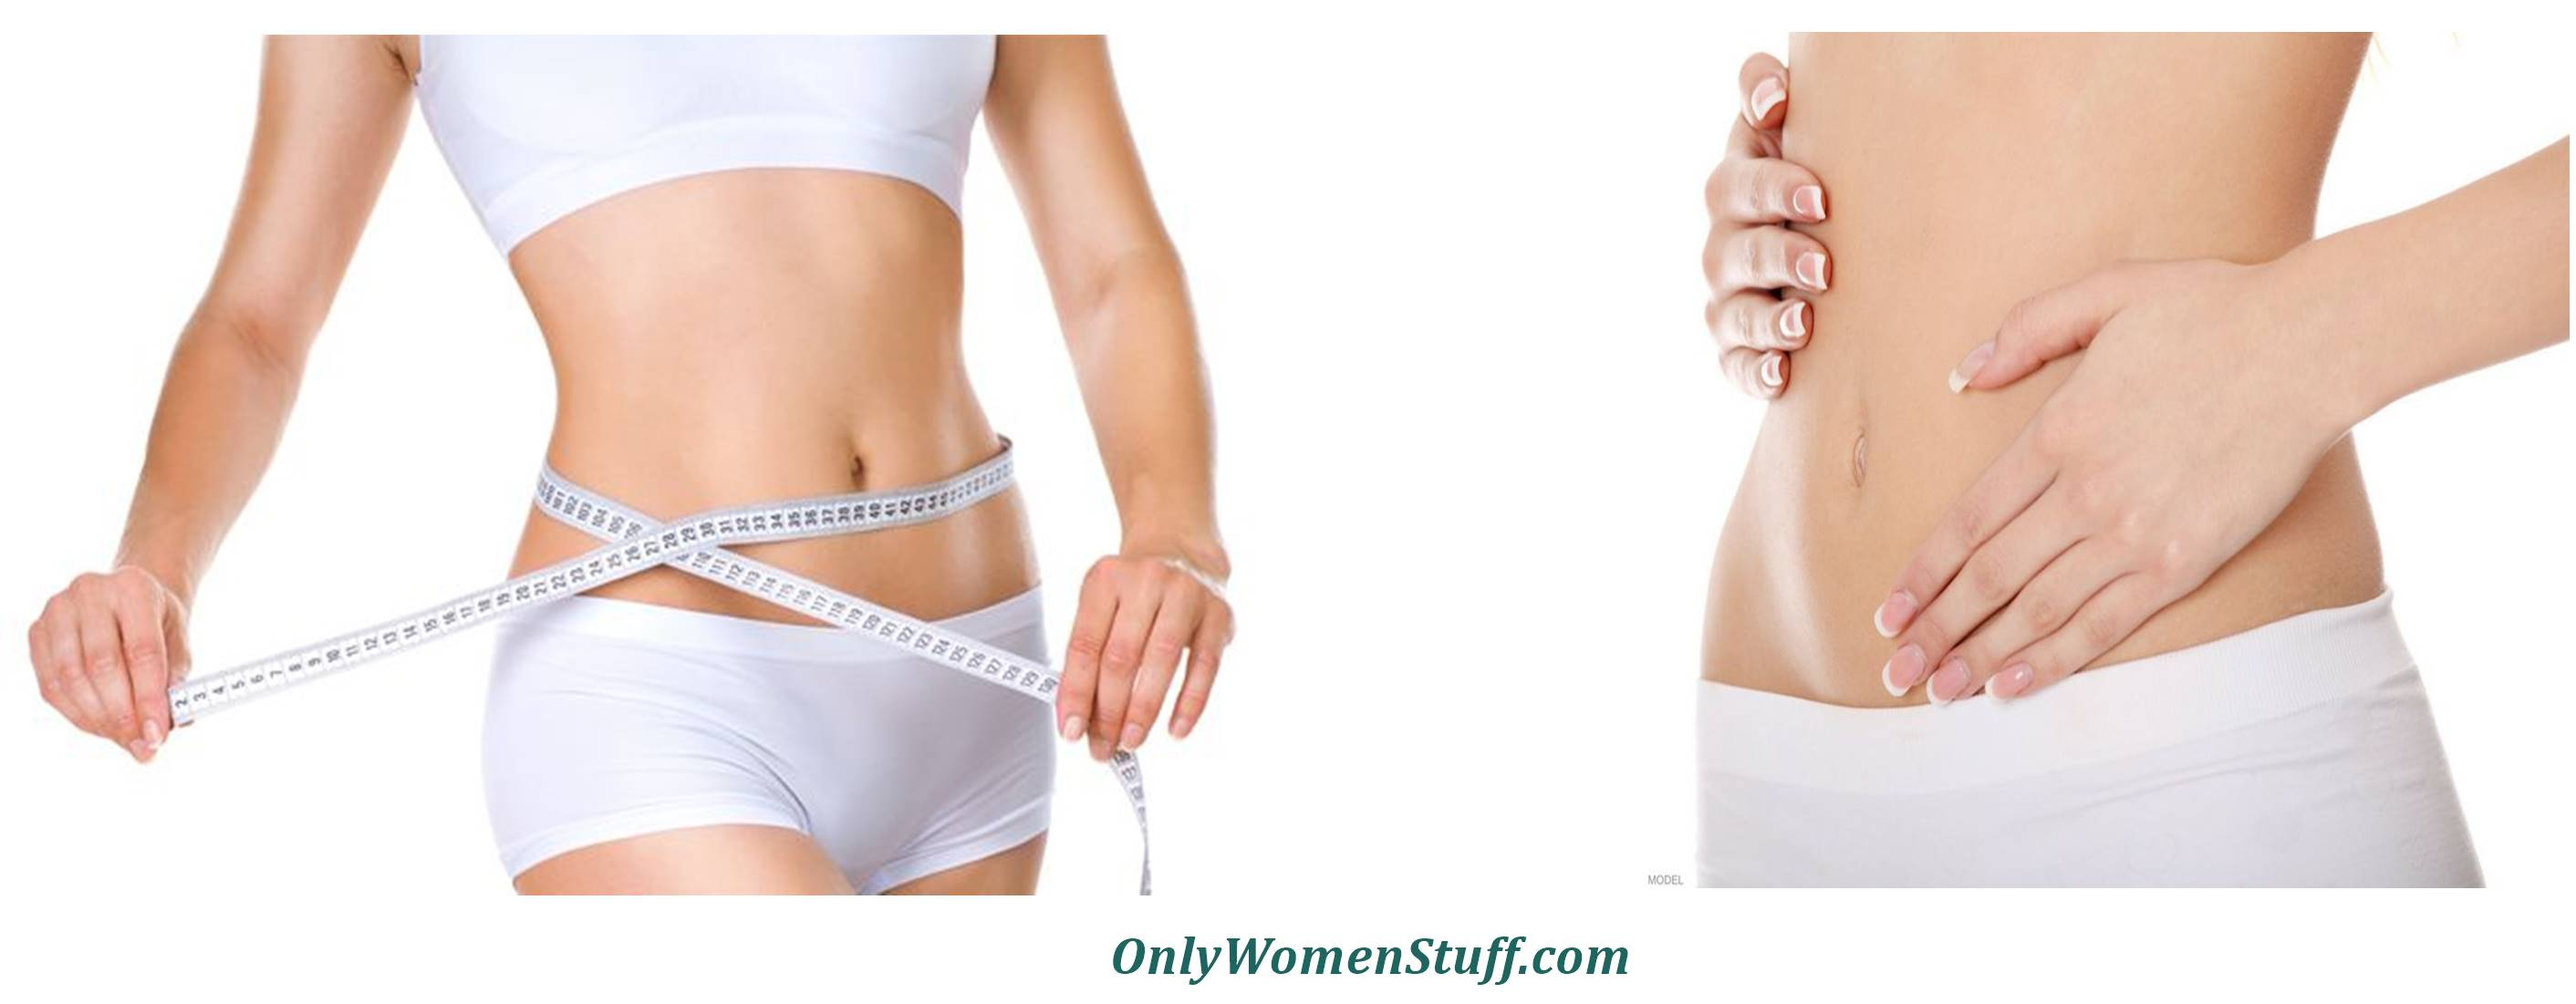 Laser Liposuction, Laser Lipo Reviews, Laser Lipo Pros and cons, Laser Lipo Side Effects, Laser Lipo Cost